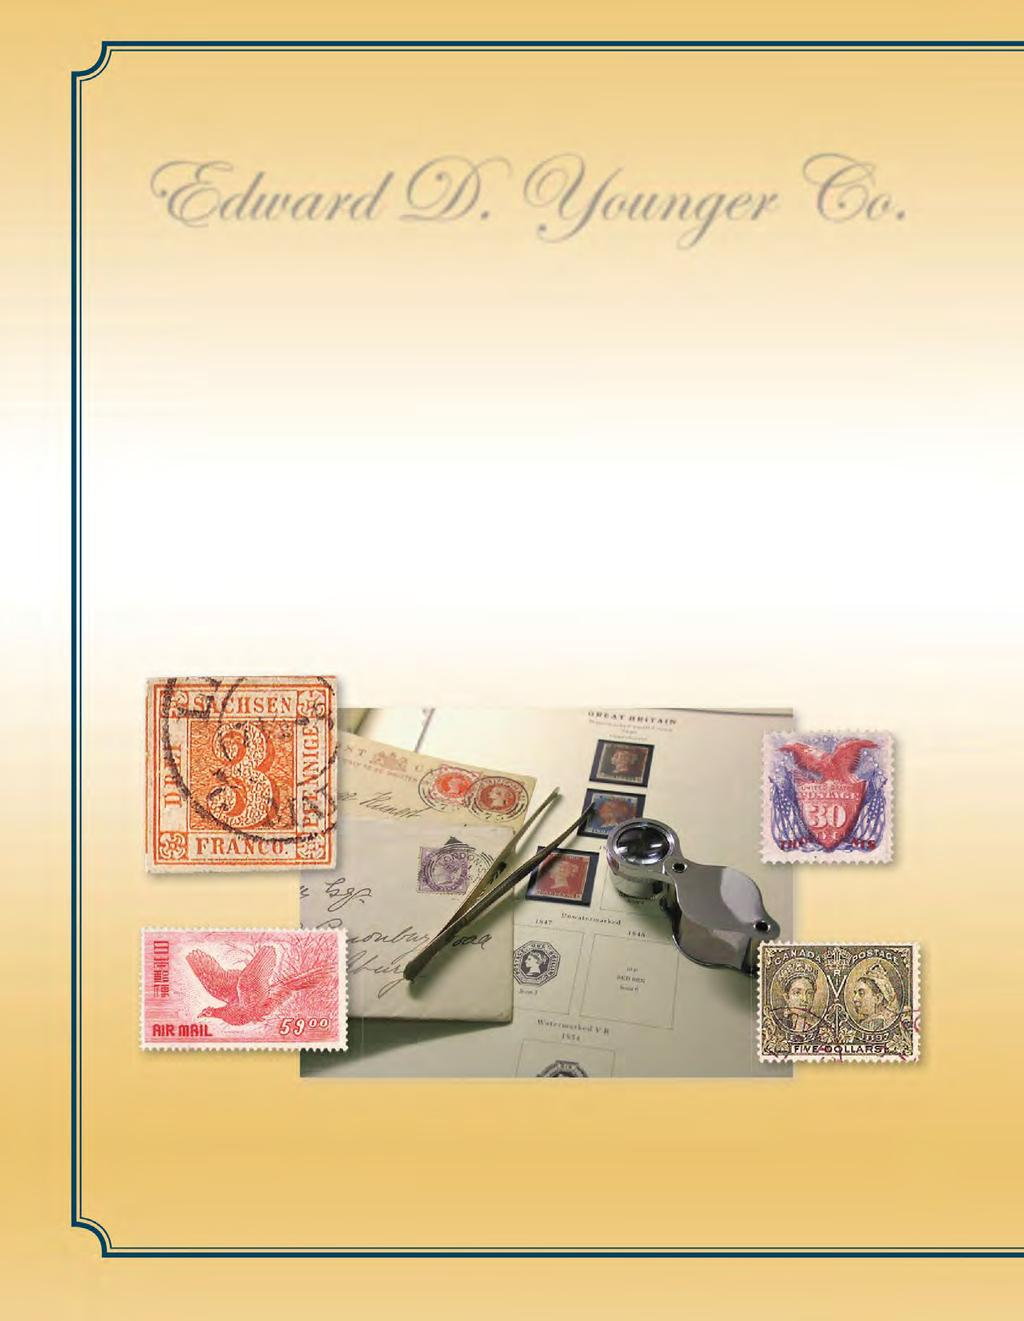 495 February Uncommon Revisited Pdf Is A Diagram On How To Print Sheet Kelsey Excelsior Press Edward D Younger Co